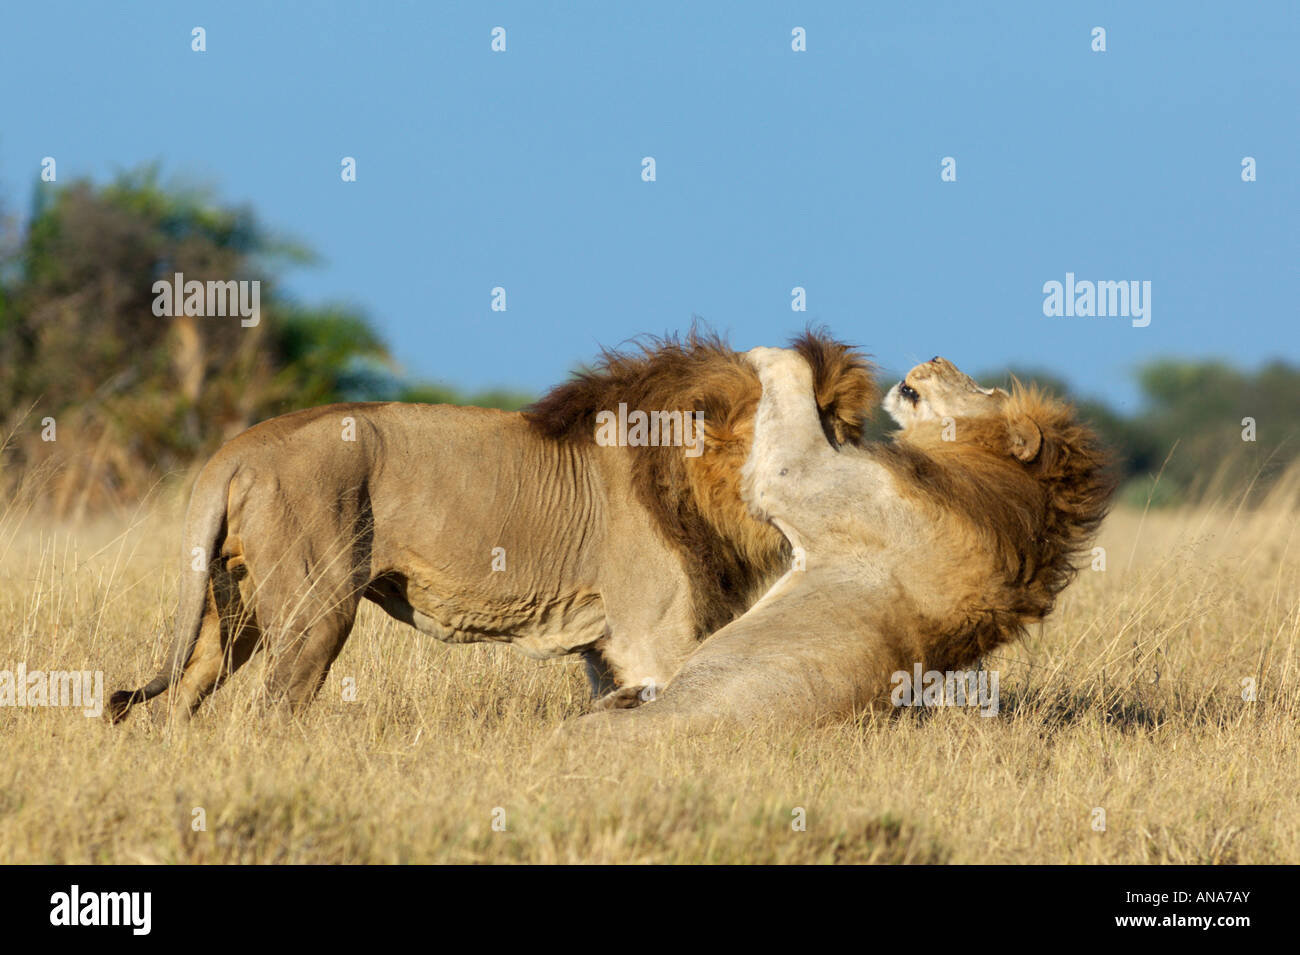 Two male lions play-fighting - Stock Image